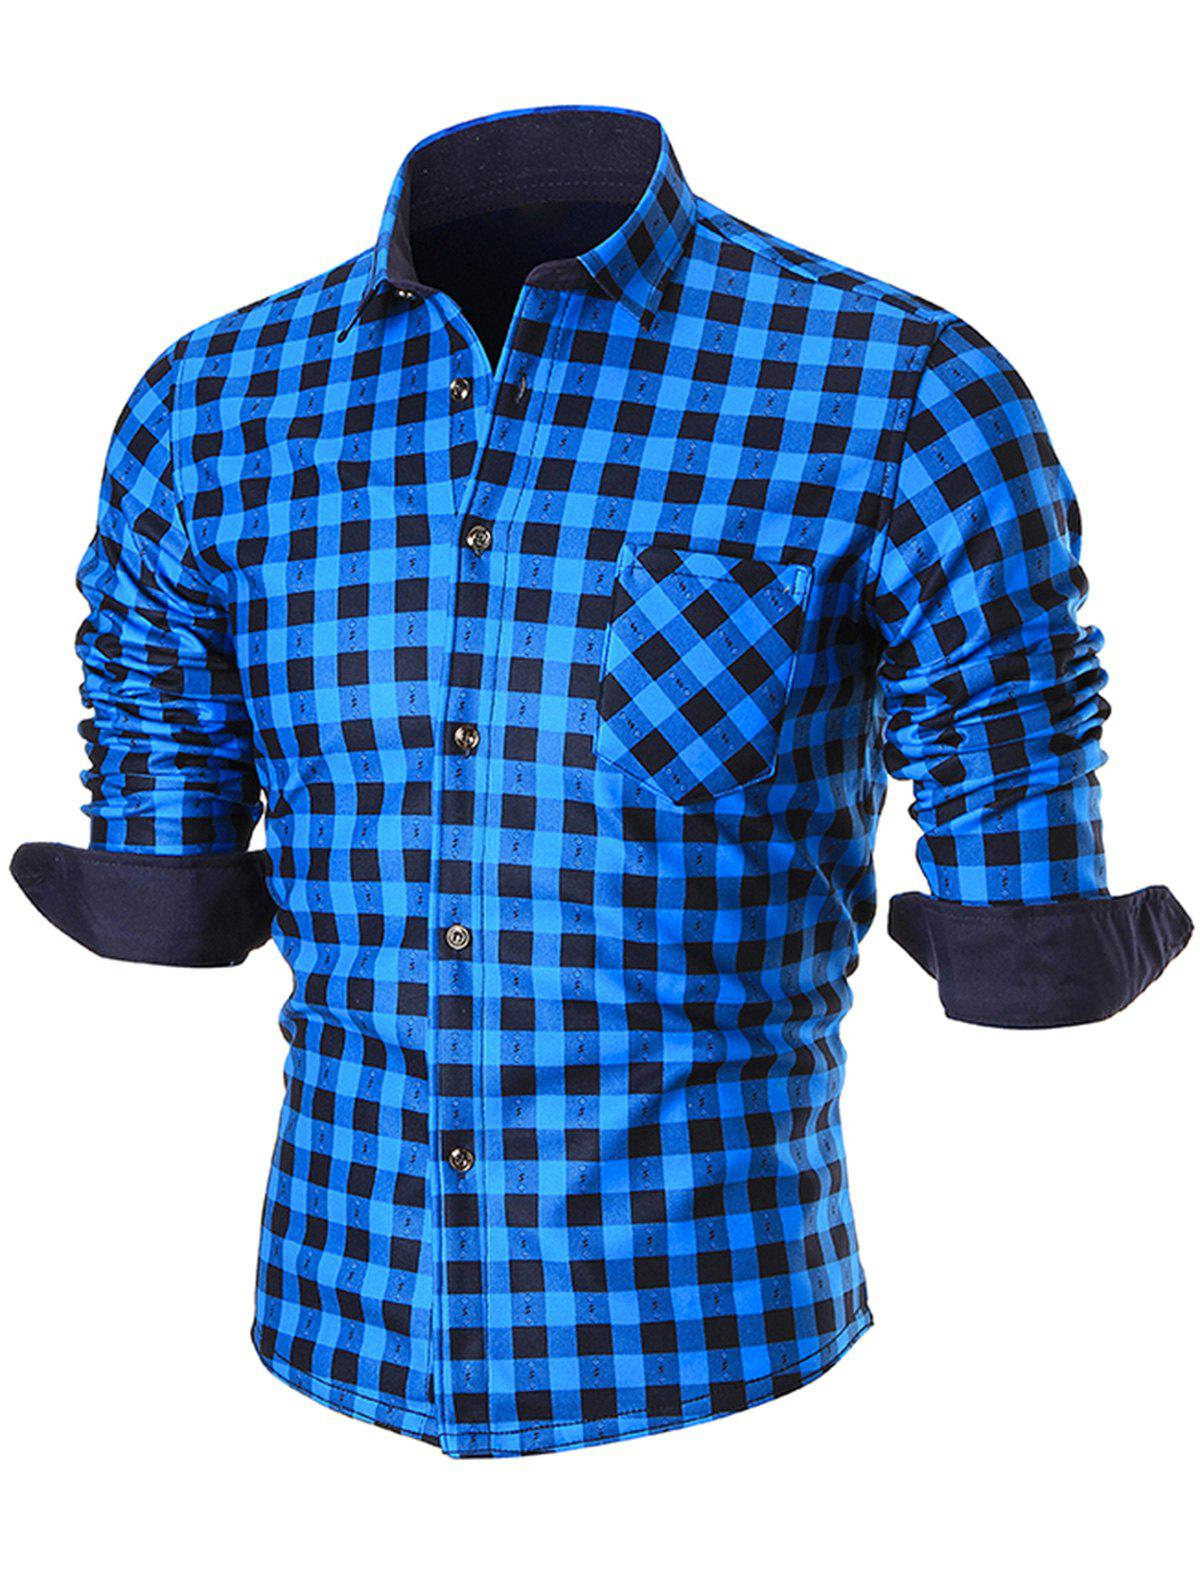 Warm Thicken Button Up Plaid ShirtMEN<br><br>Size: 2XL; Color: BLUE; Shirts Type: Casual Shirts; Material: Cotton,Polyester; Sleeve Length: Full; Collar: Turn-down Collar; Pattern Type: Checkered,Plaid,Print; Weight: 0.4400kg; Package Contents: 1 x Shirt;